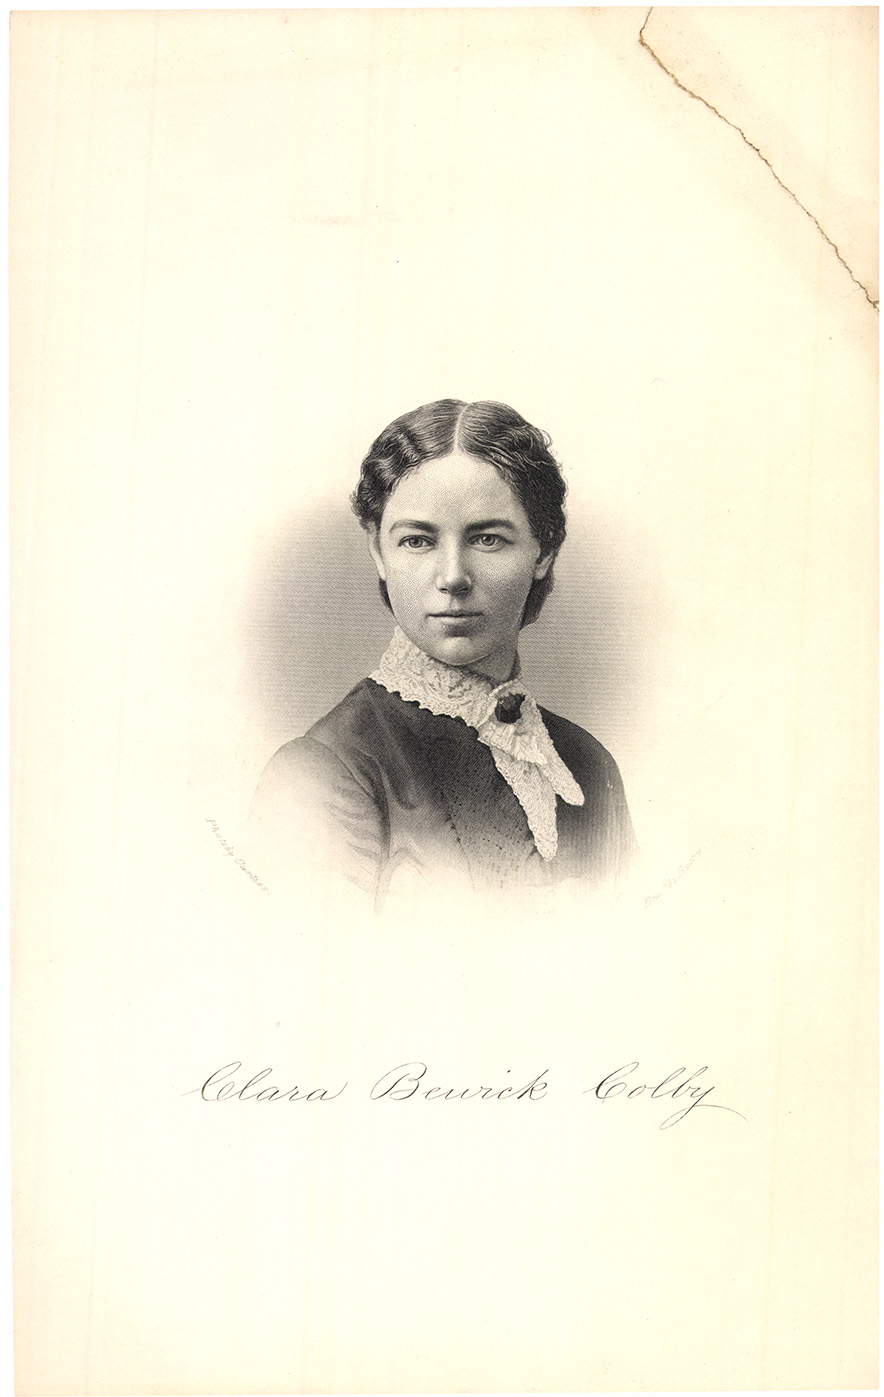 Clara Bewick Colby